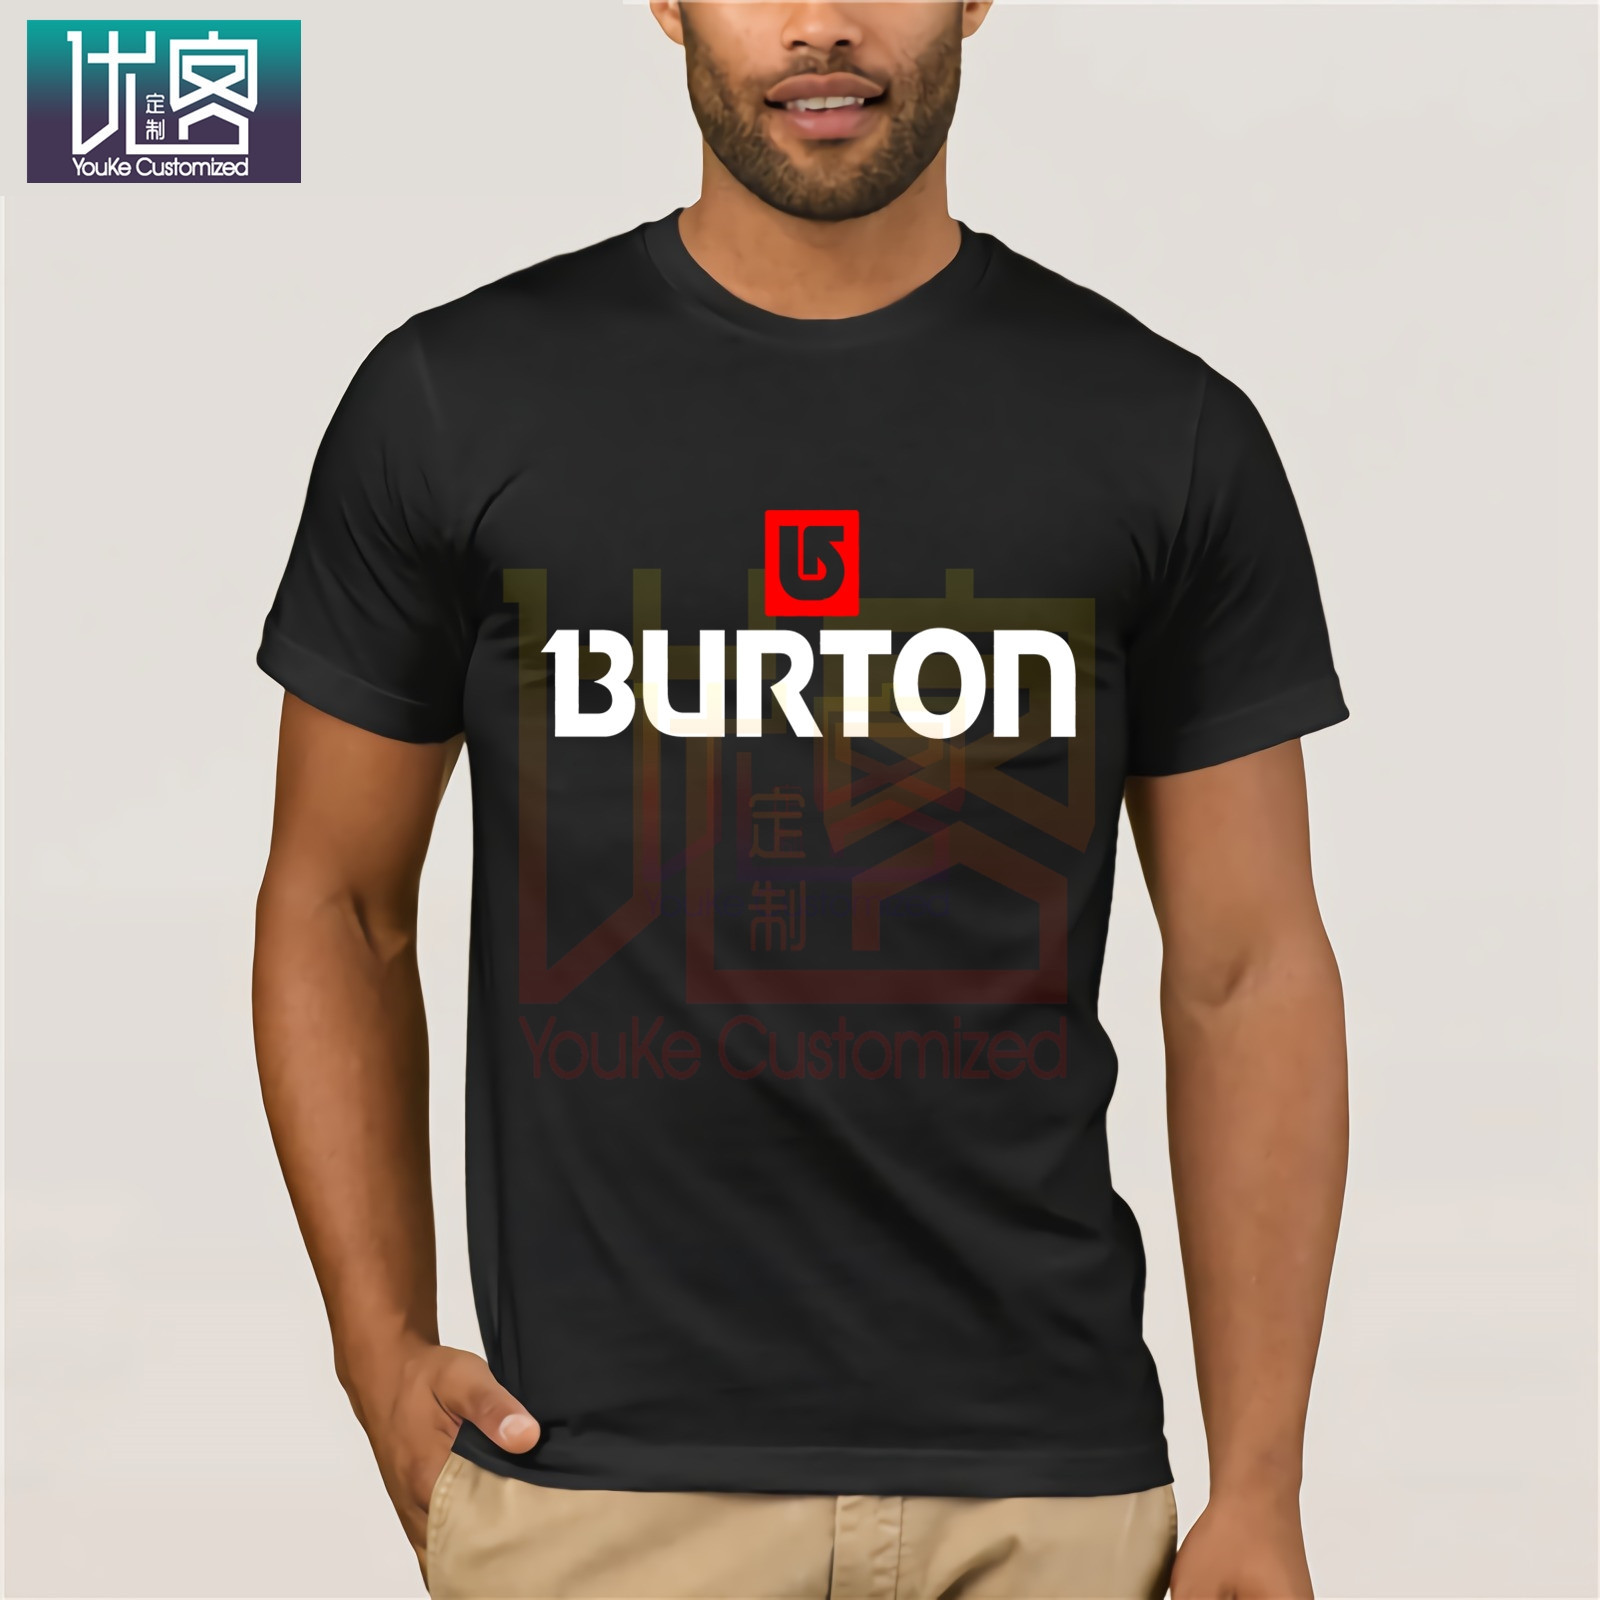 Burton Arrow Logo Snowboards T Shirt Cartoon Tee Shirt Homme Top Tees Men Cool 2019 Shirt Tops Summer Tees Cotton O Neck T-Shirt